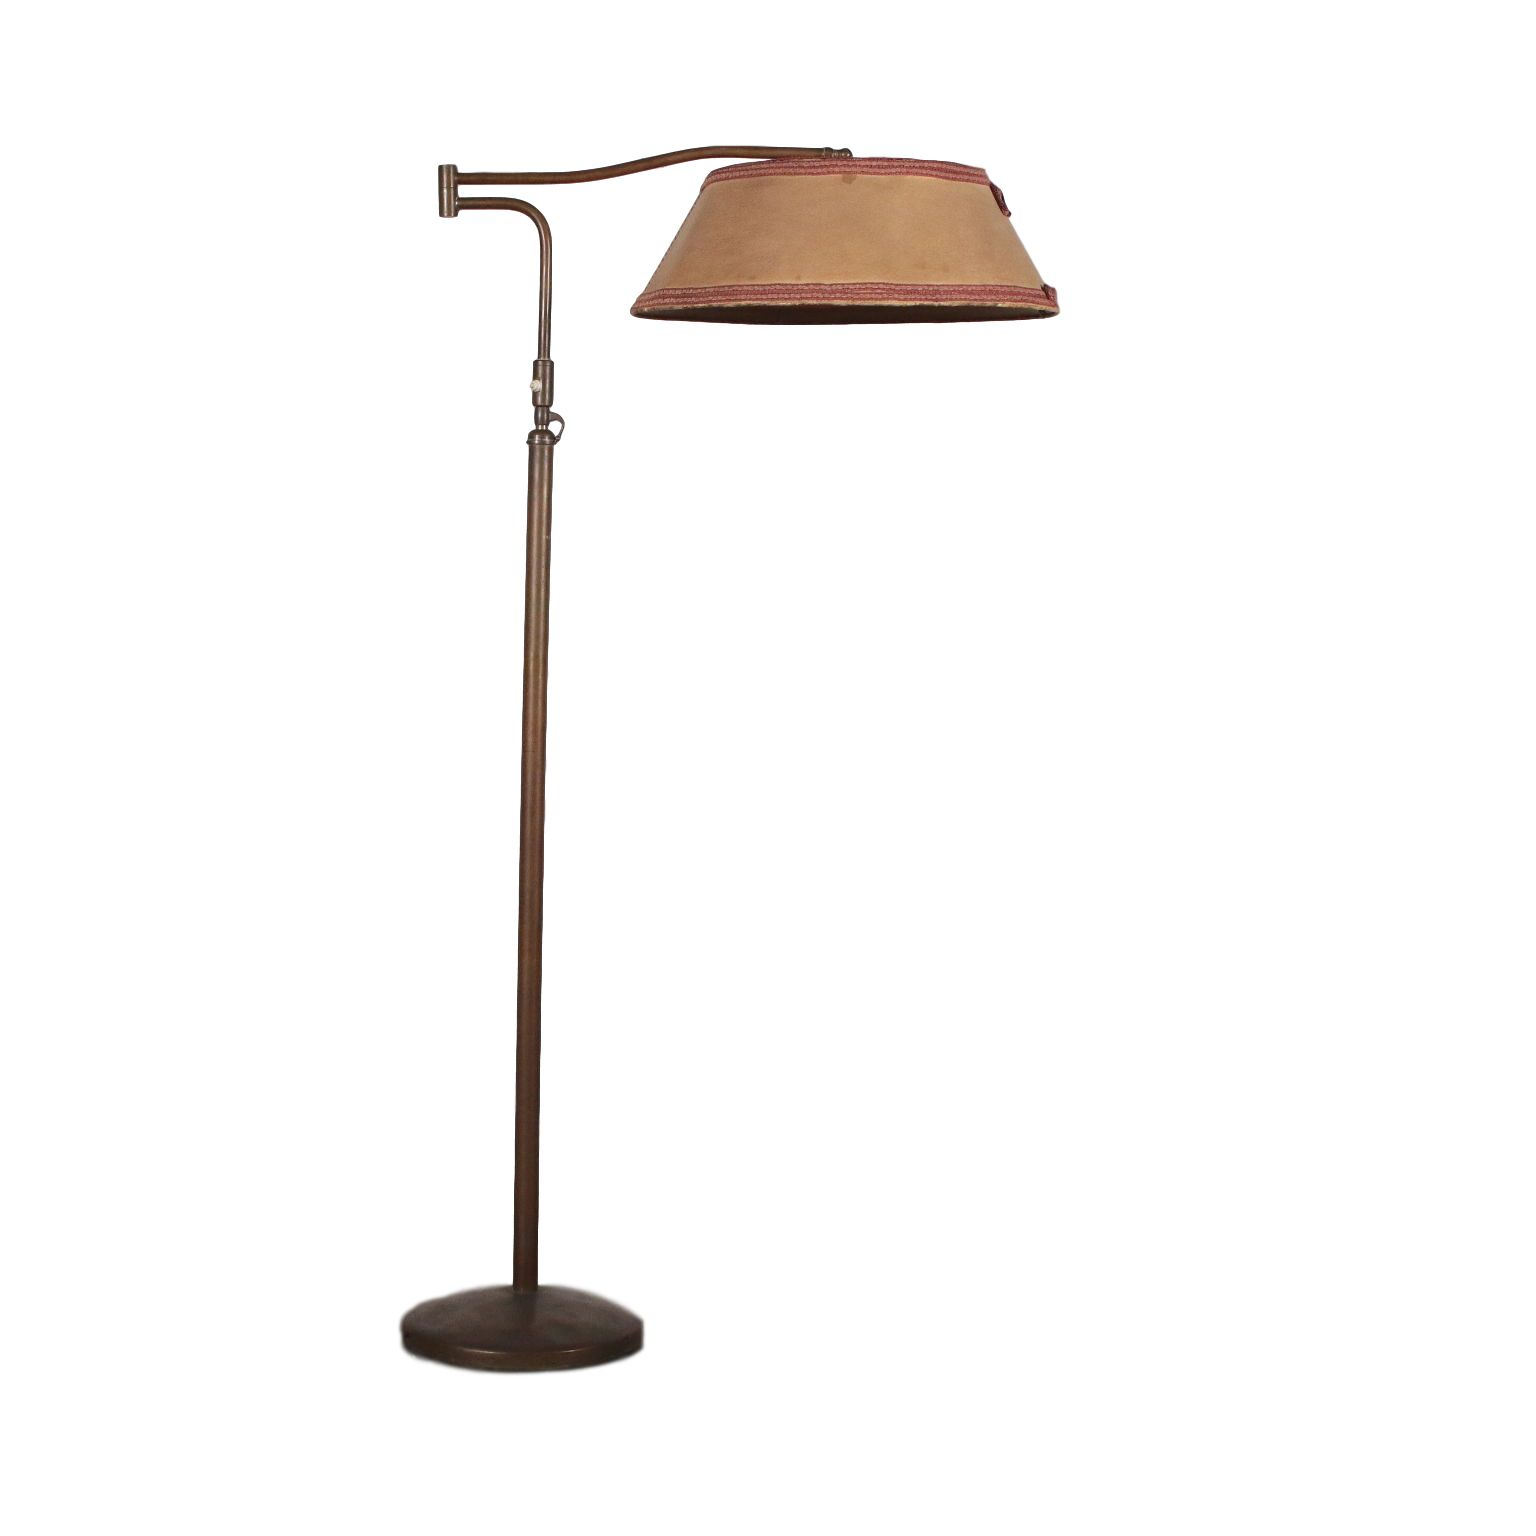 Vintage Floor Lamp With Lampshade Vintage Italy 1940s 1950s Metal Floor Lamp Adjustable Height And Lam Lampe Sur Pied Lampadaire Lampadaire Design